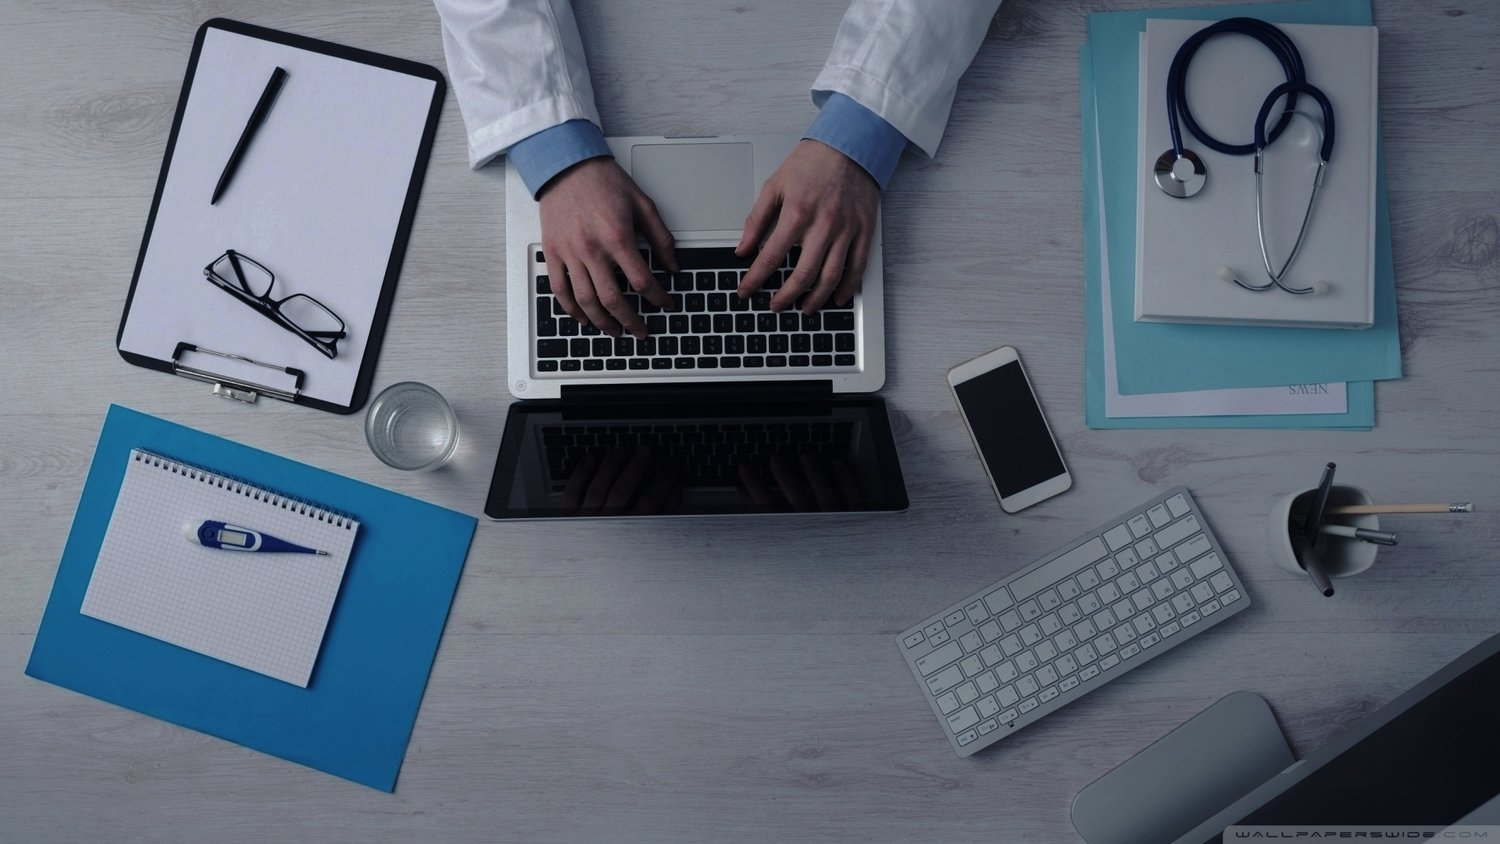 Doctor office hd wide wallpaper Ultra Are Among The Most Popular Specializations Driving Individuals To Travel Abroad For Rather Than Consulting Local Doctor At Home Thrive Global Looking Good Mexicos Medical Tourism Scene Is Booming Thanks To